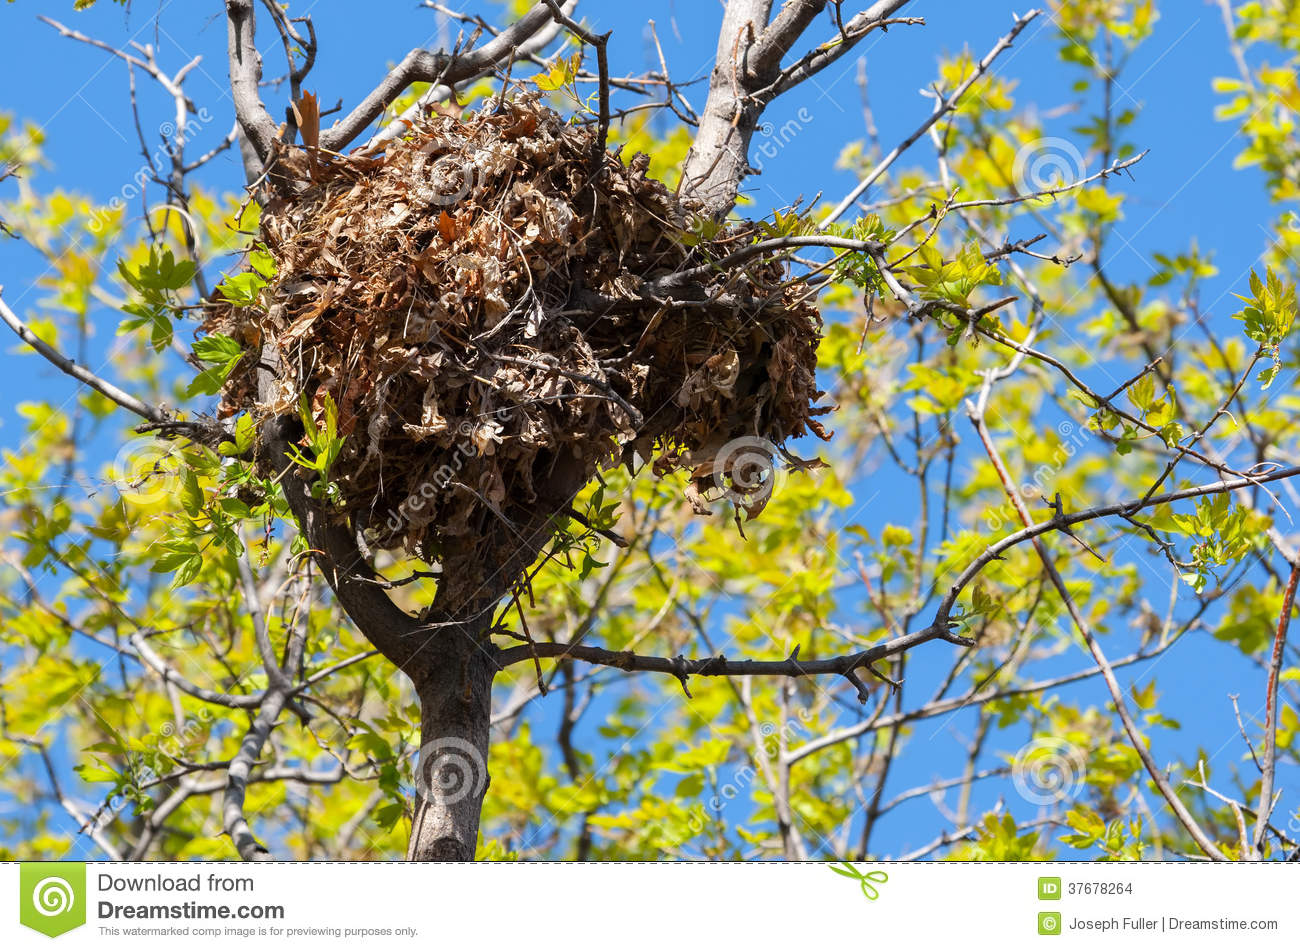 Tree Squirrel Nest High Up In A Tree Stock Photo  Image 37678264